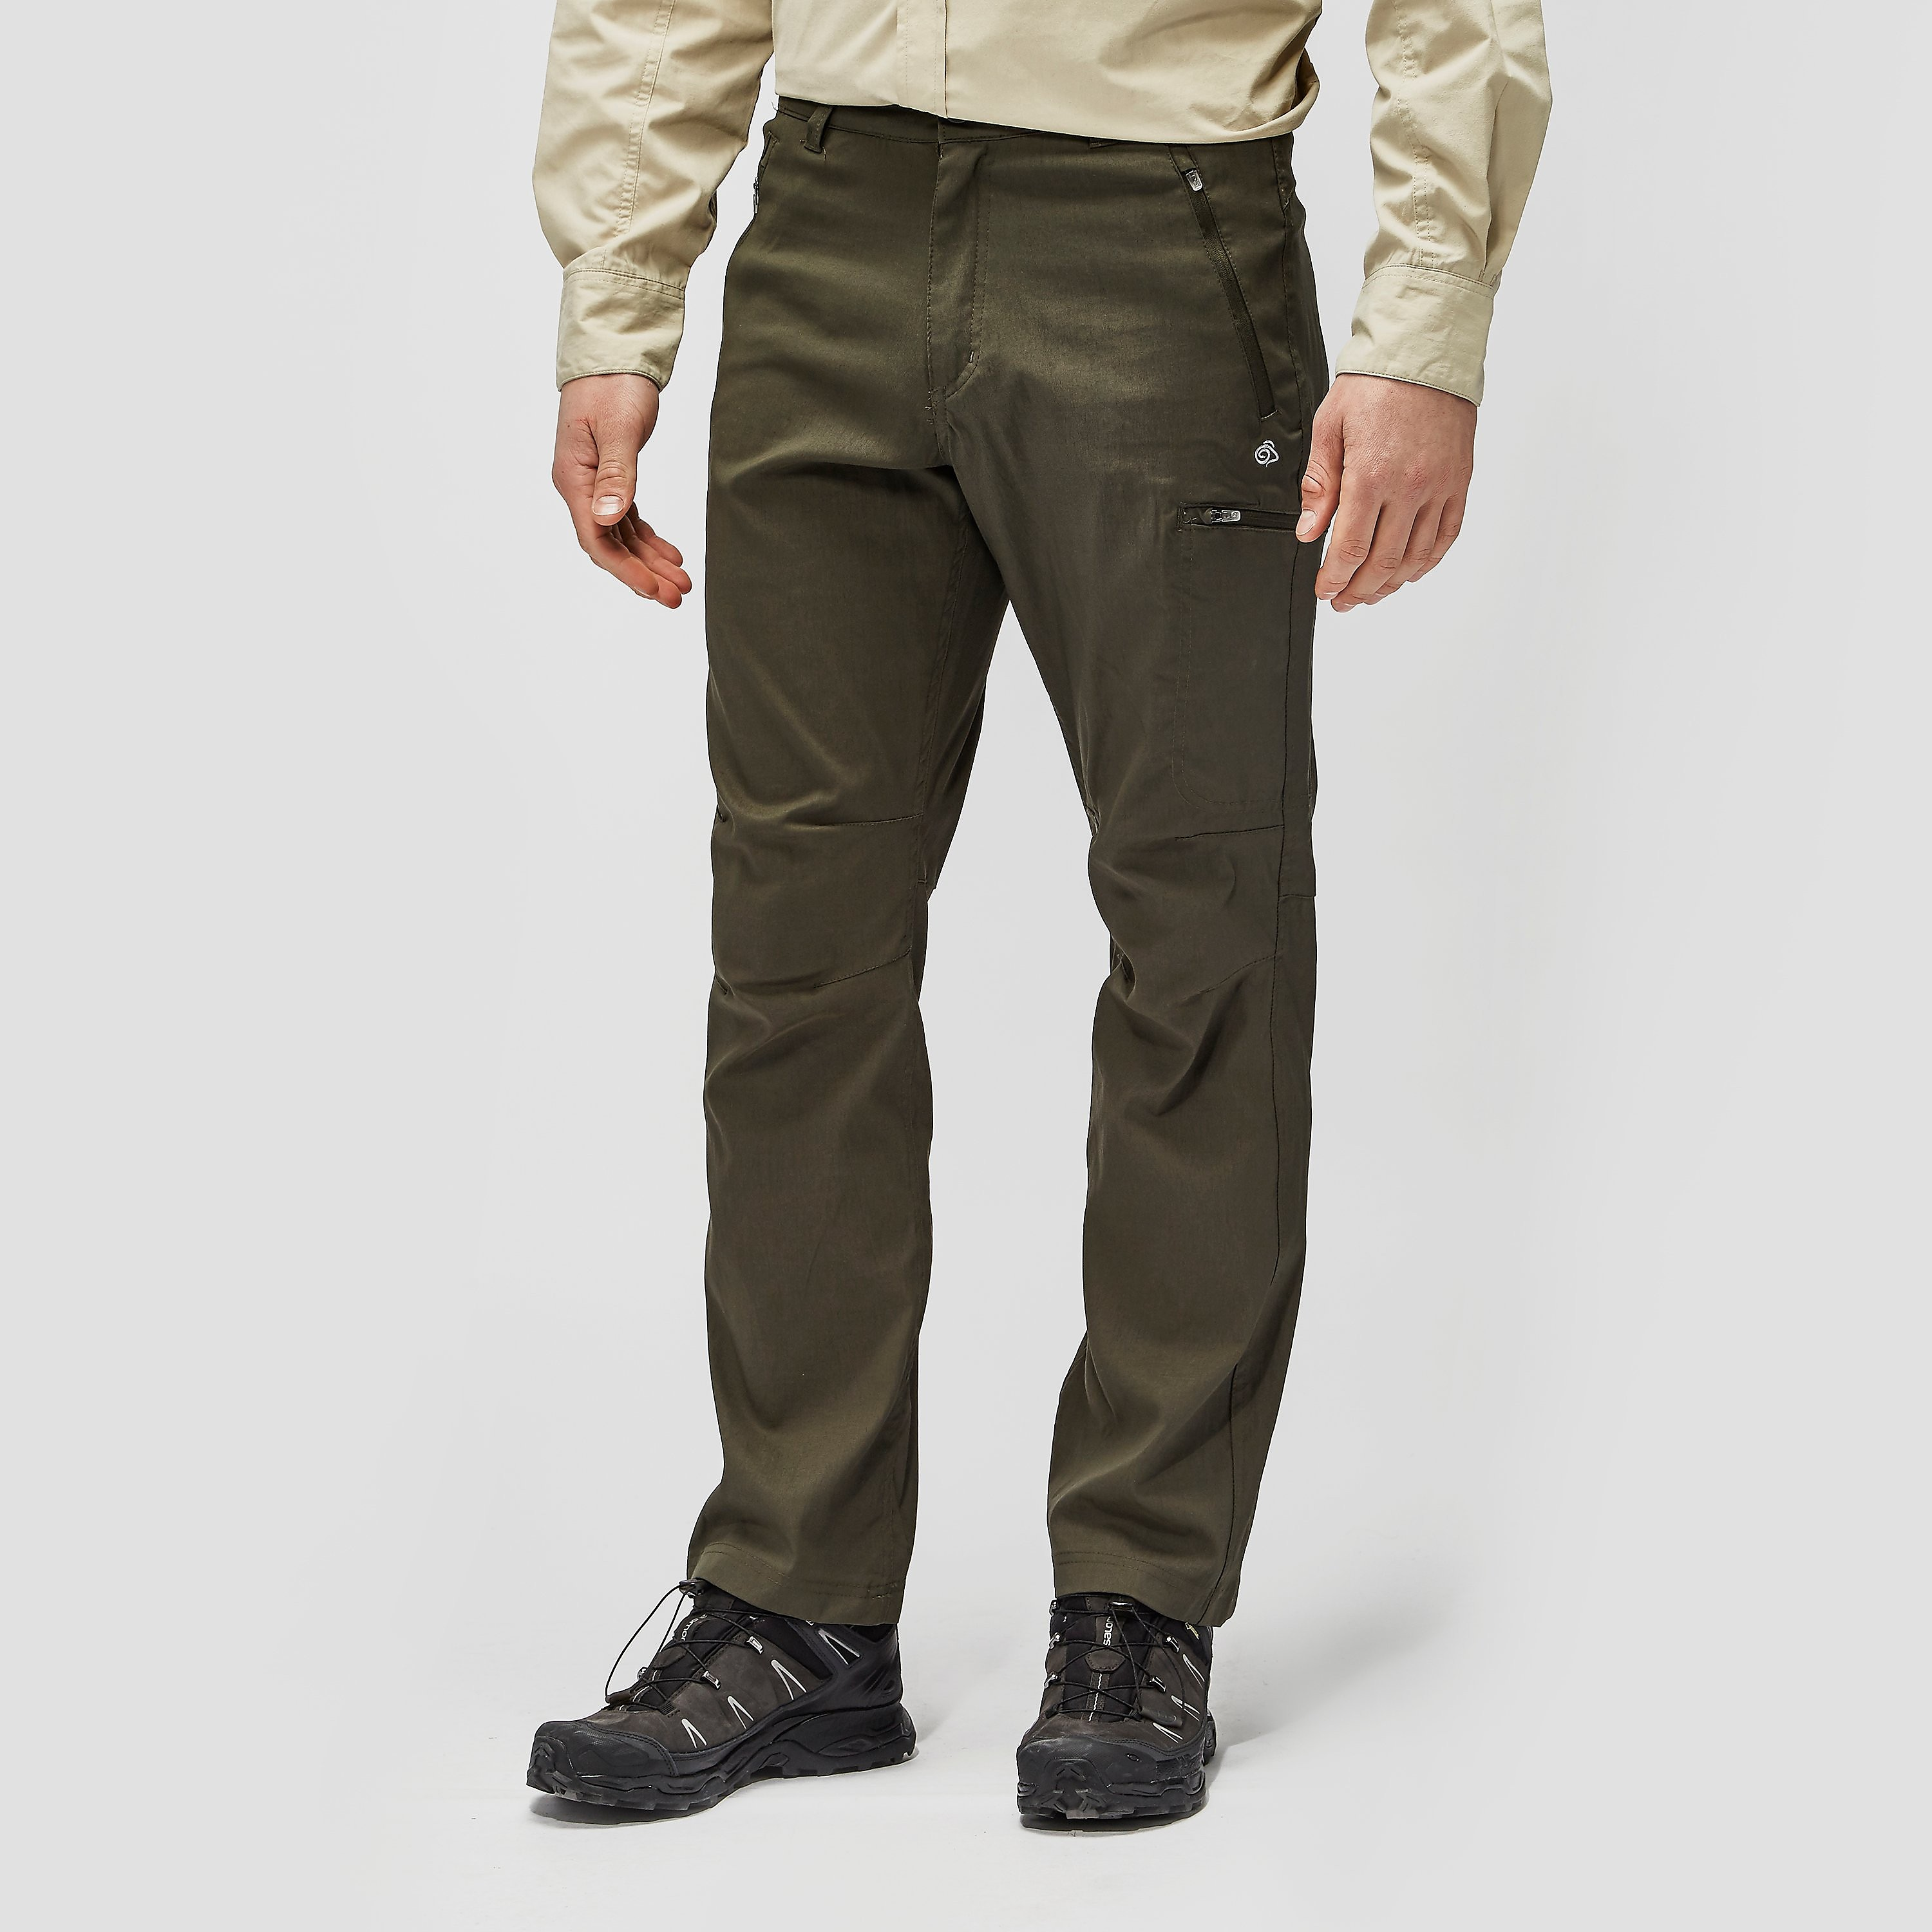 Craghoppers Kiwi Pro Stretch Men's Trousers